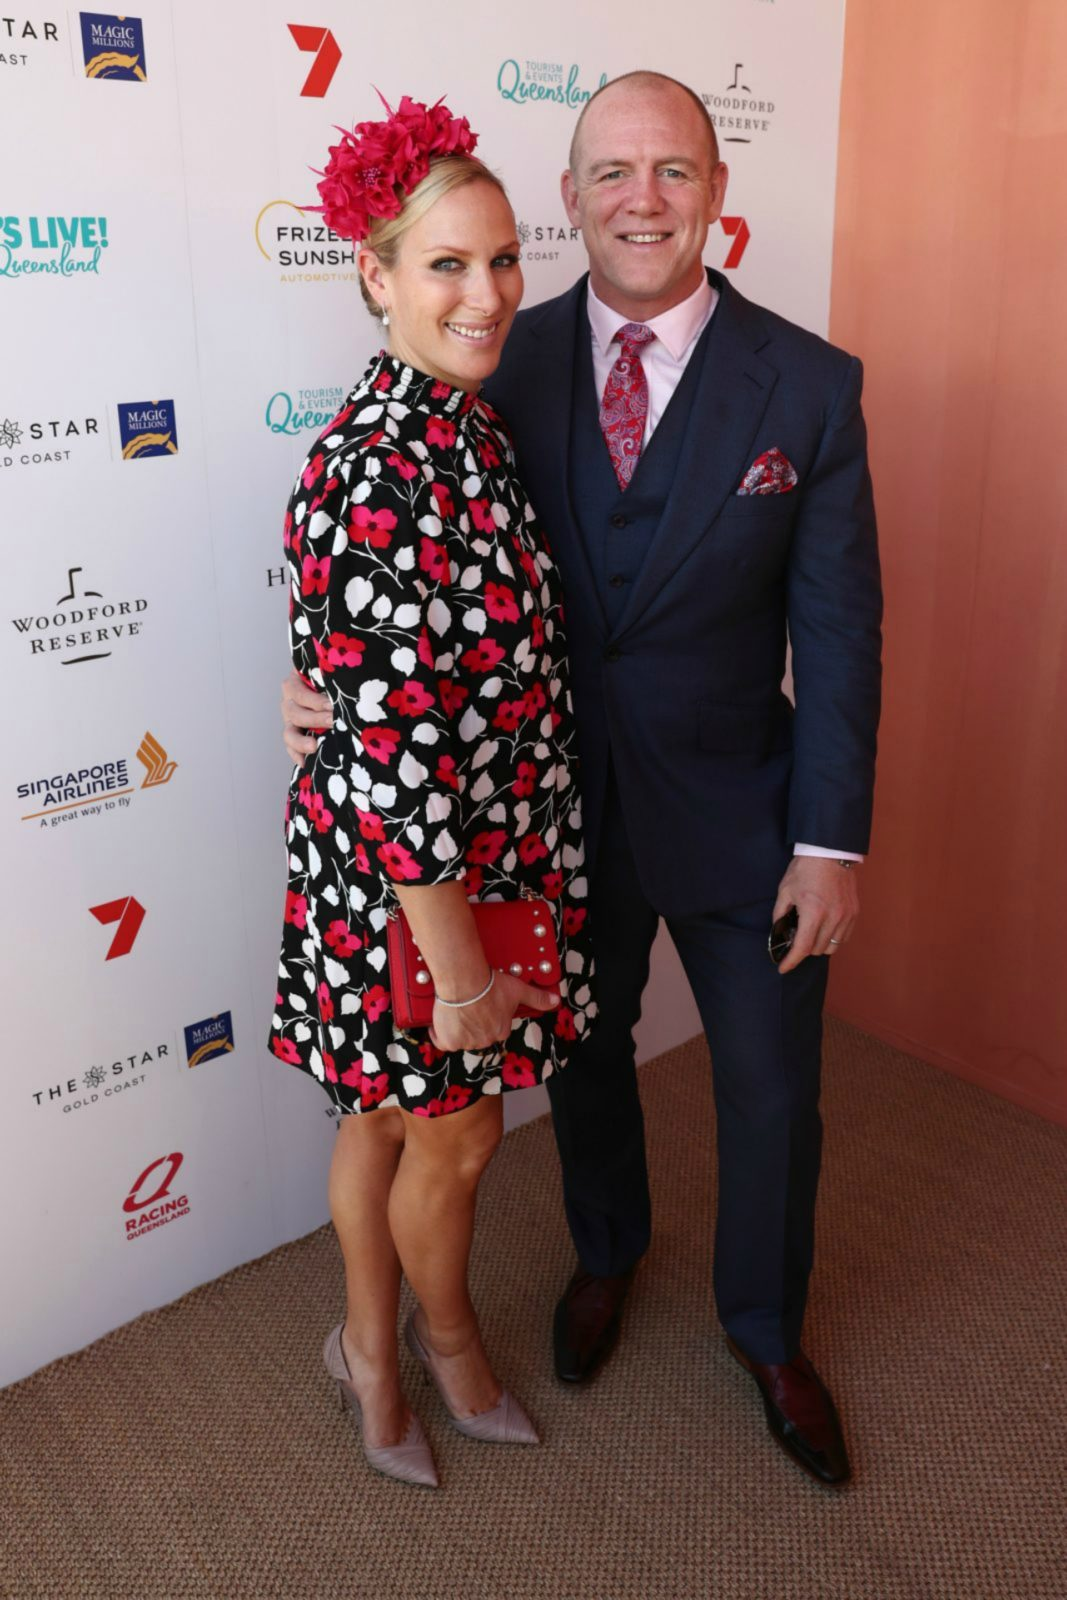 The Tindalls wowed audiences in Australia earlier this year.